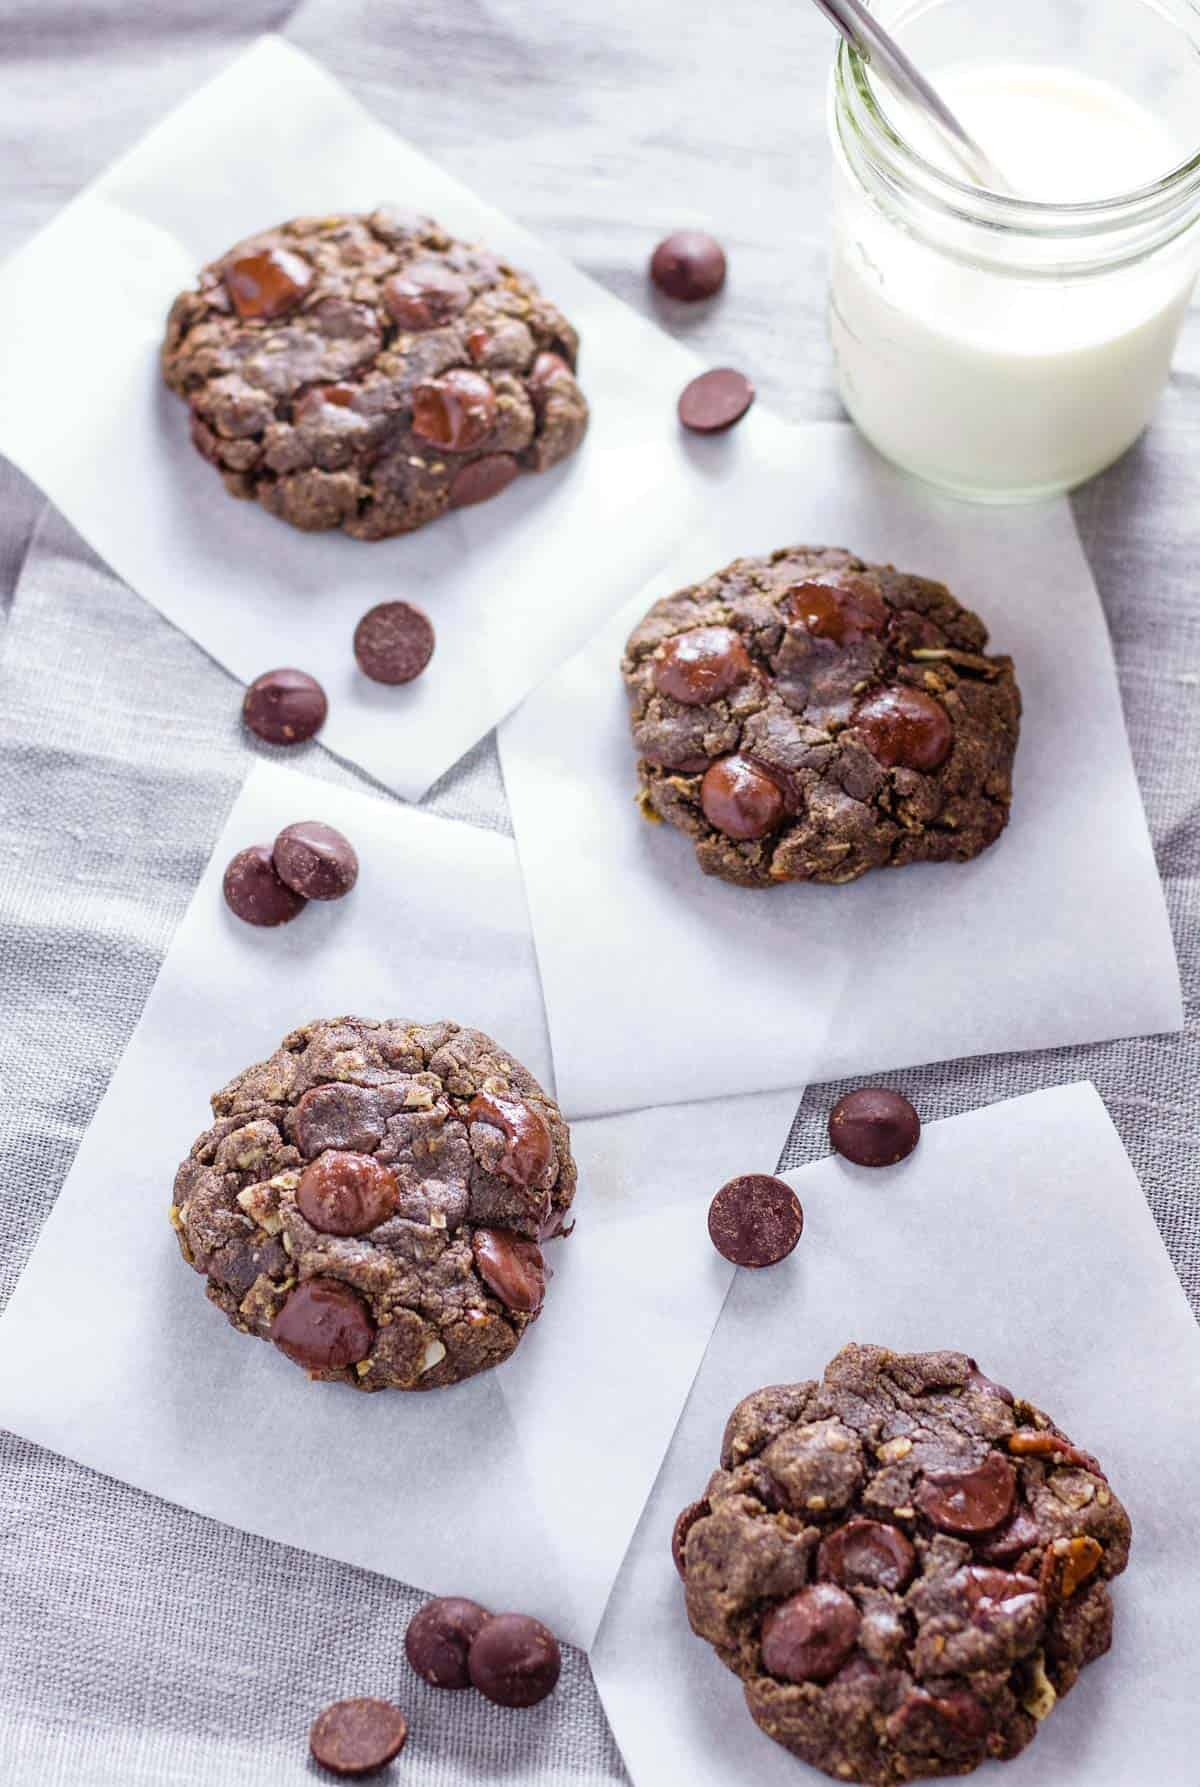 Cookies are set out on a parchment squares with chocolate chips sprinkled about.